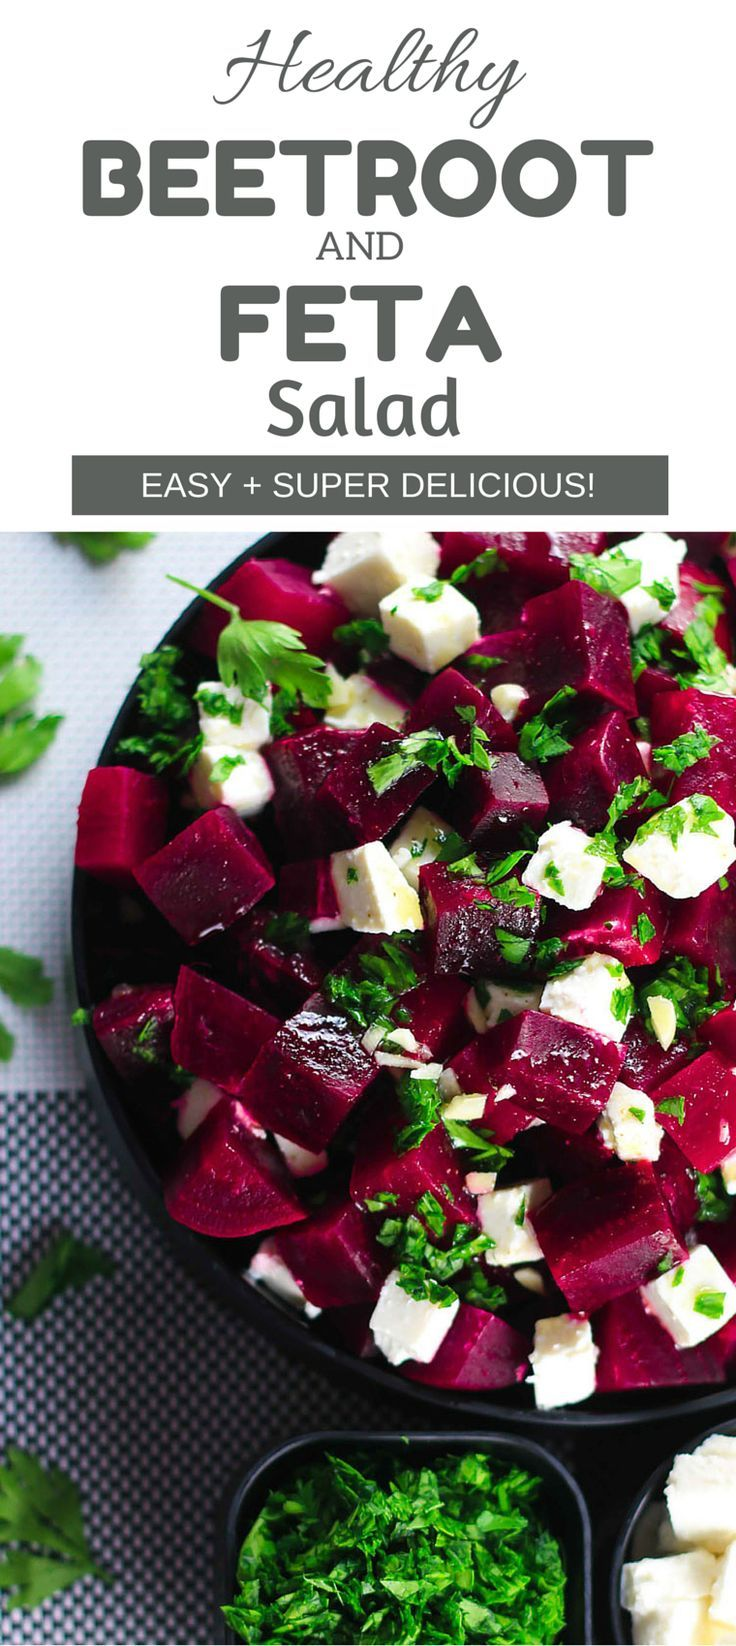 This salad has the perfect balance of sweet and salty from the beetroot and feta cheese - SO good! Super healthy and tastes even better!